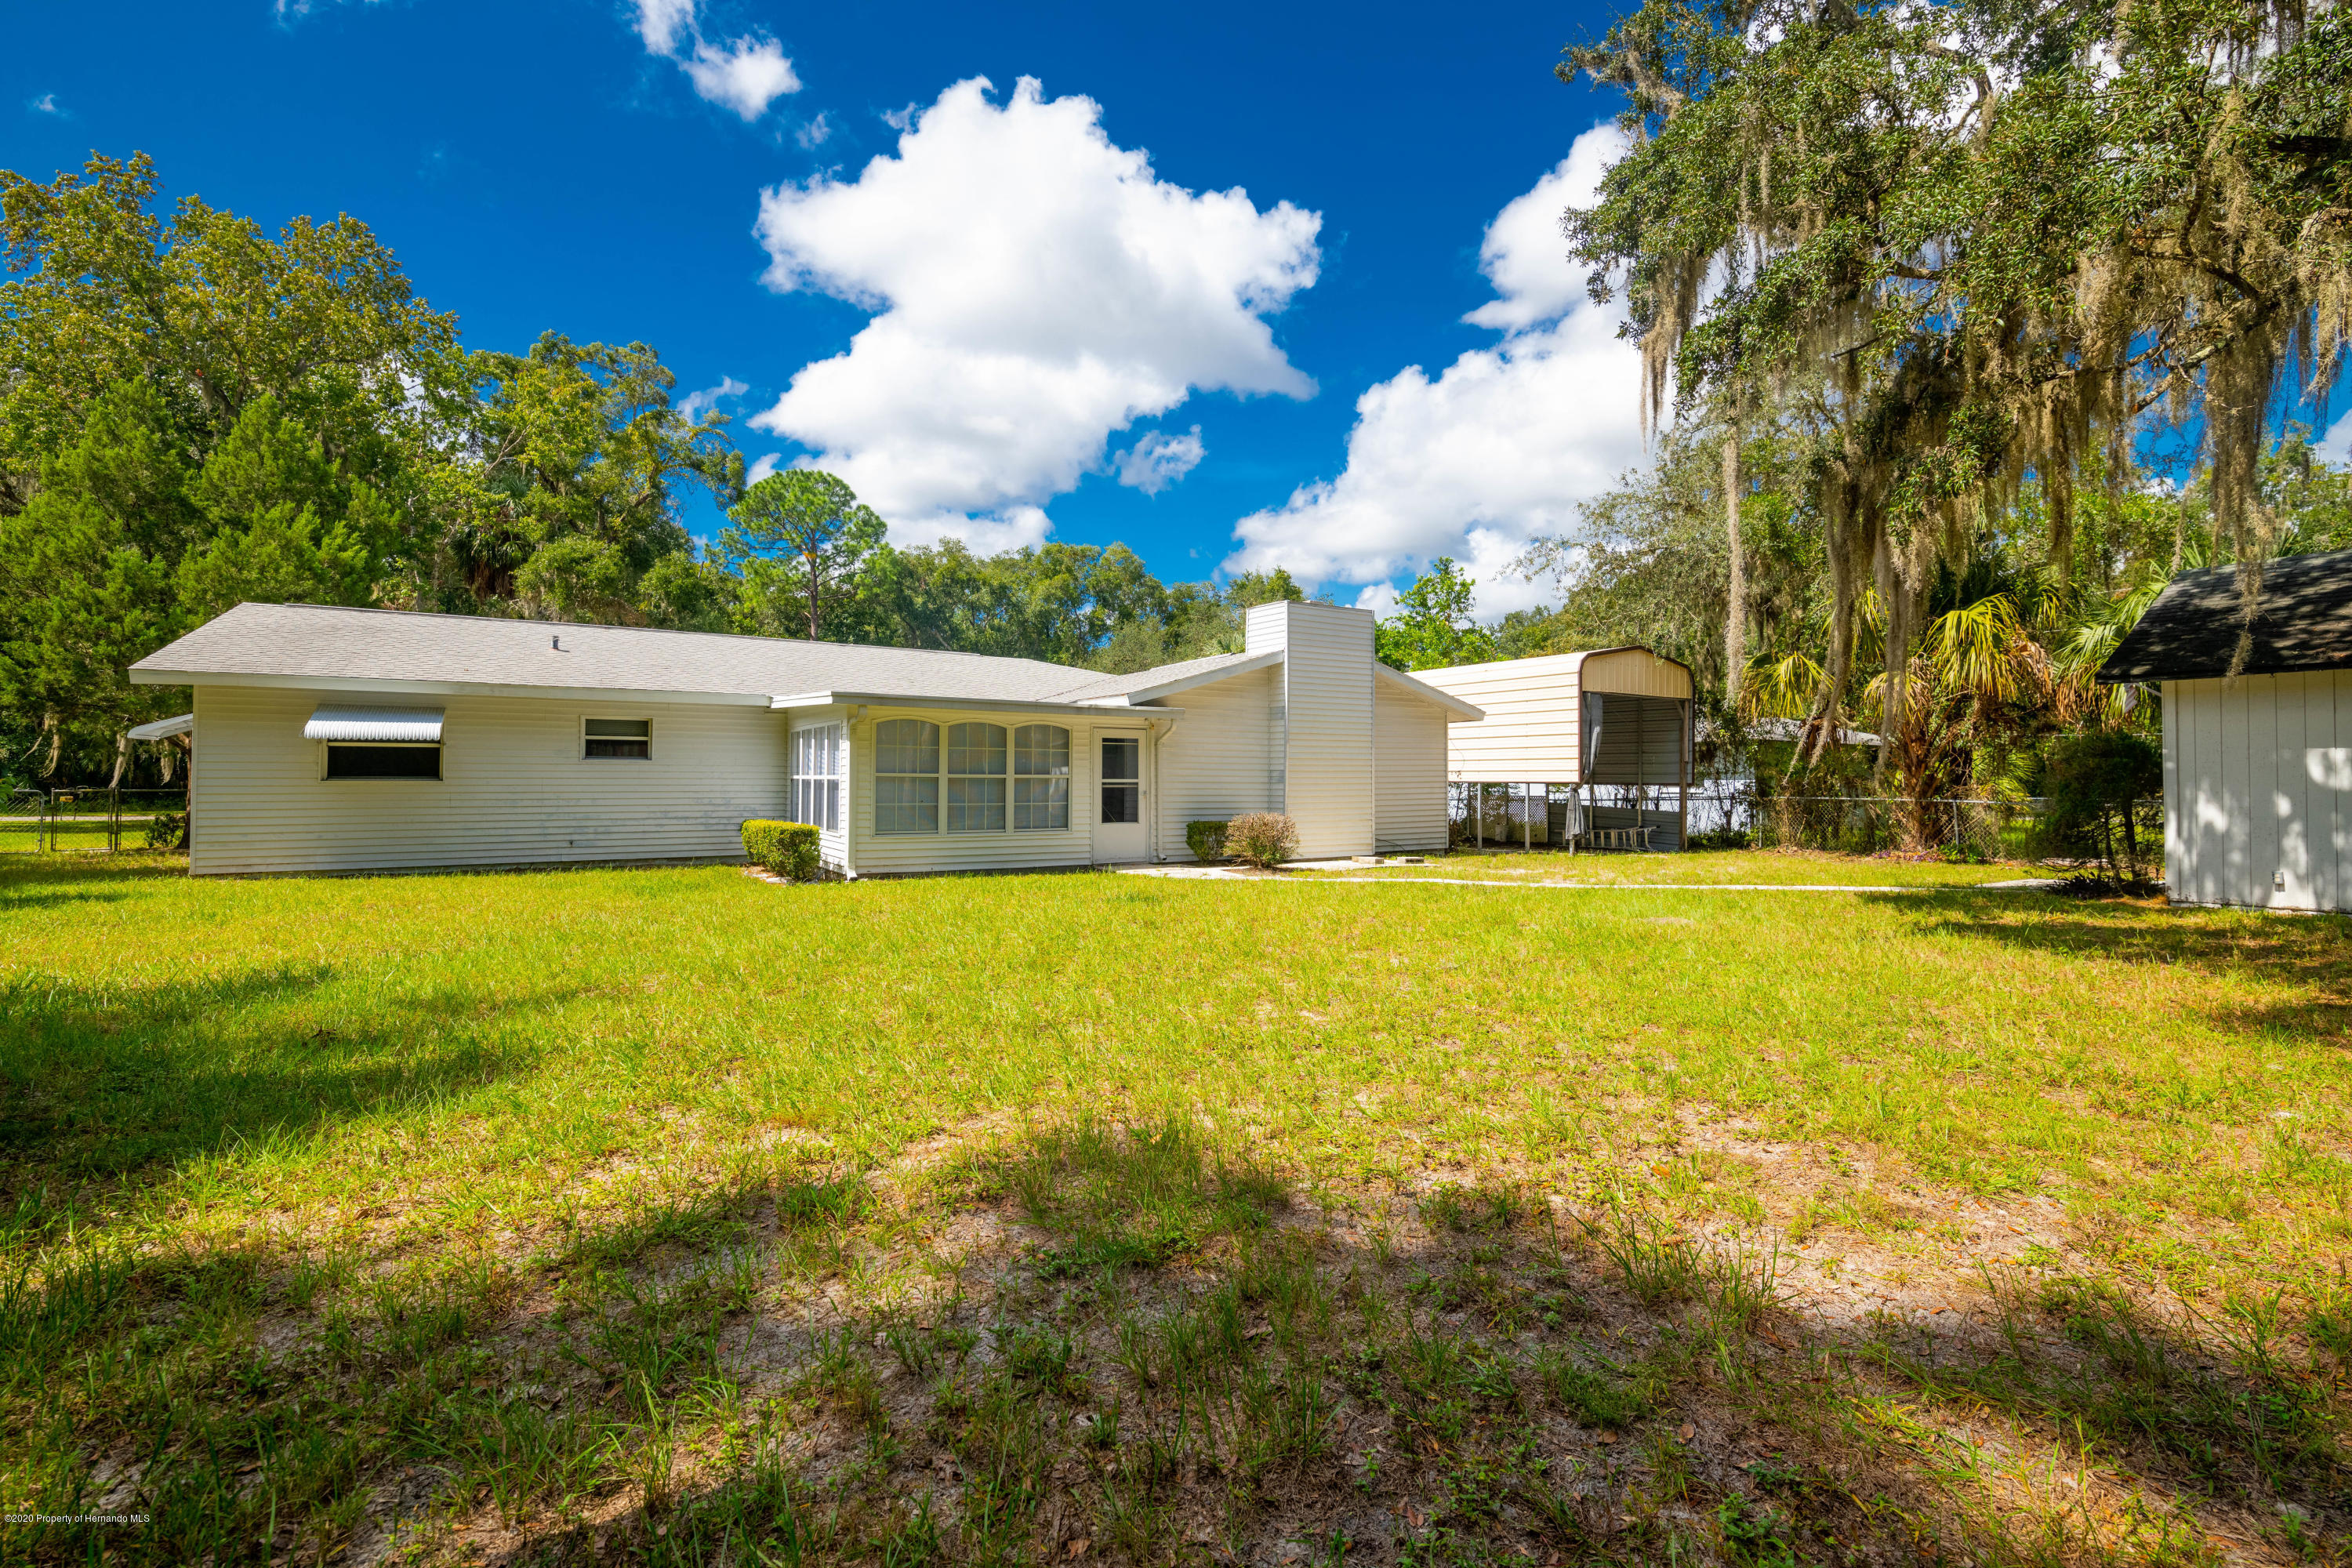 Lisitng Image number14 for 2041 Nw 15th Court